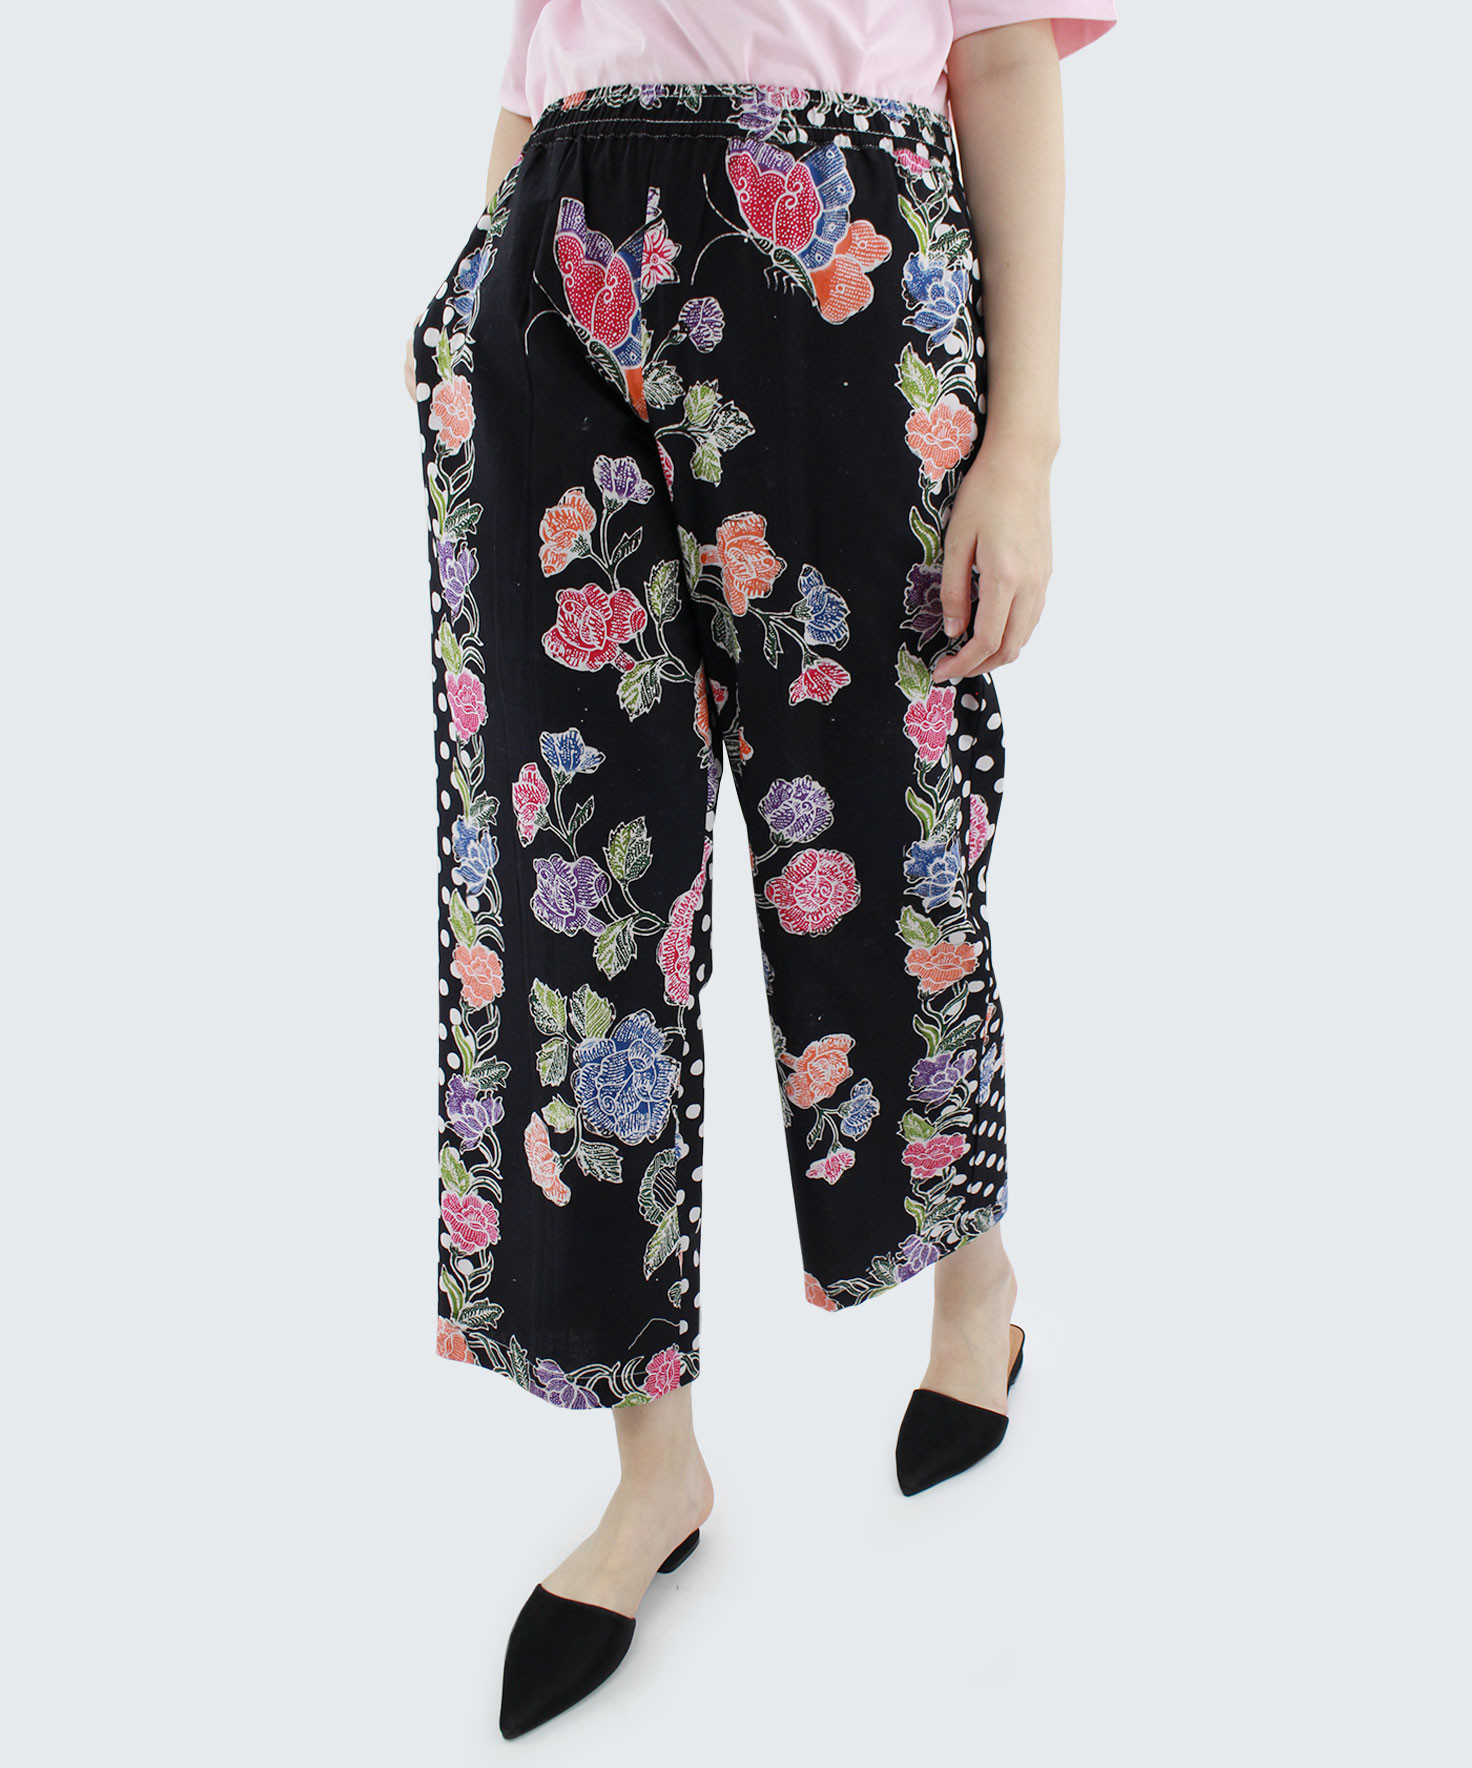 Long Pants Minimal Me Batik Mix